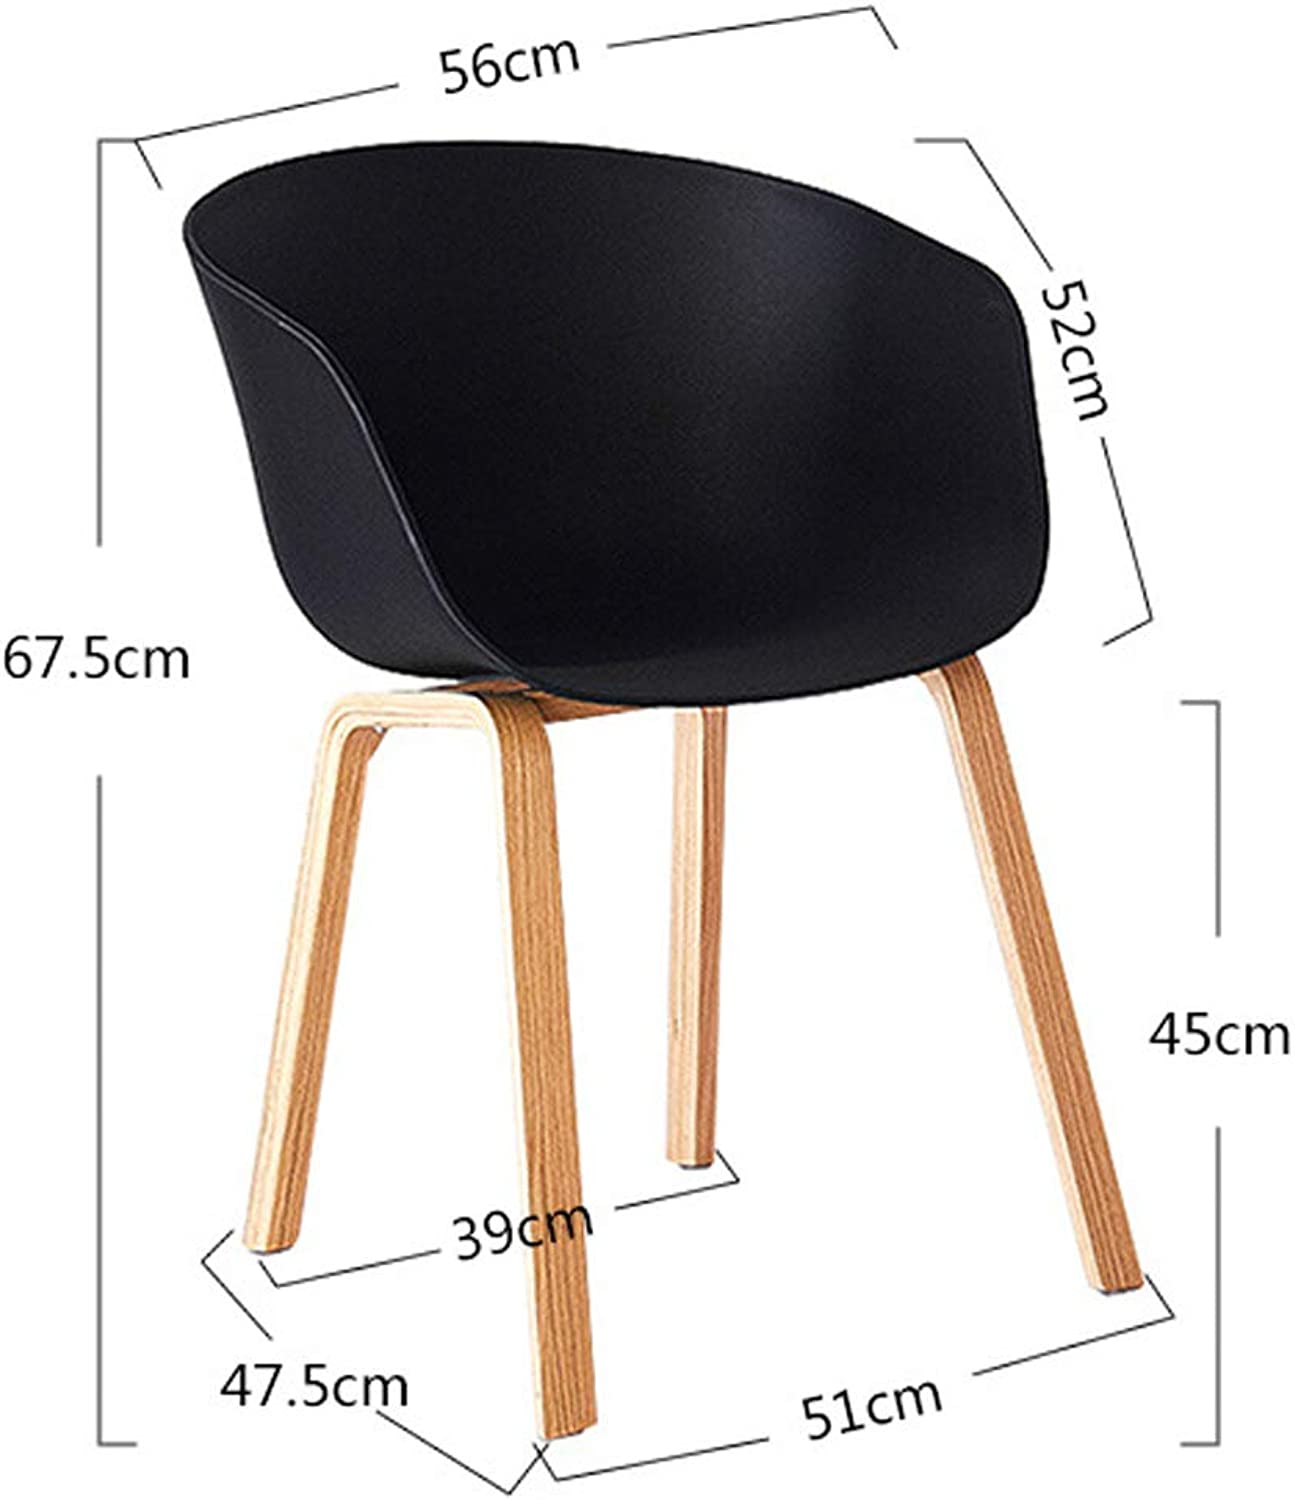 Kitchen Chairs Yellow Wood Kitchen Stools Breakfast Bar Chairs with Legs Upholstered Seat (color   Black)